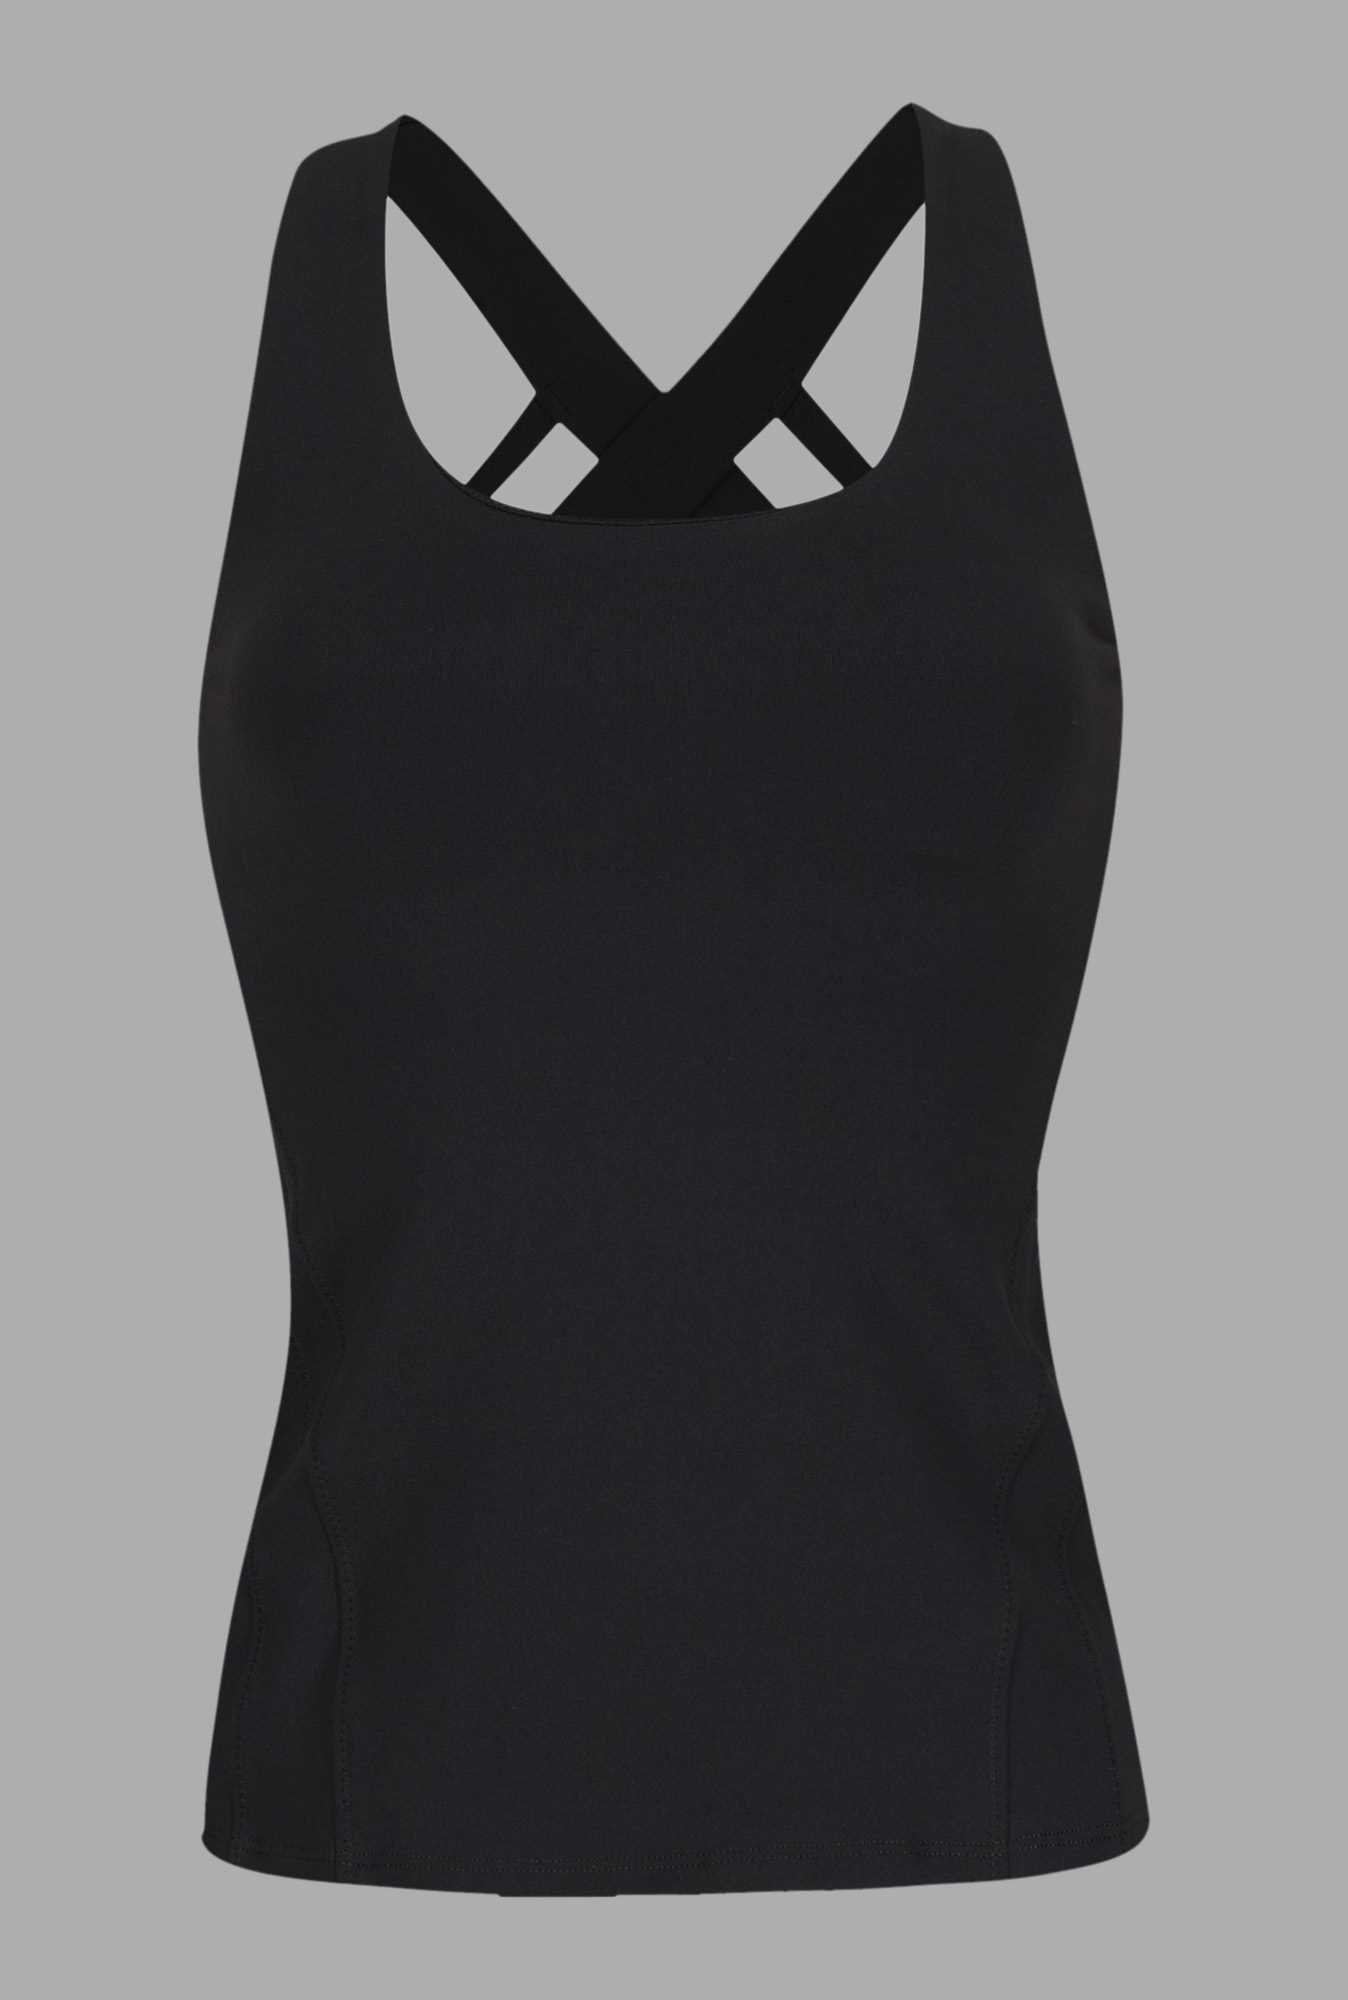 Doone Black Solid Training Singlet